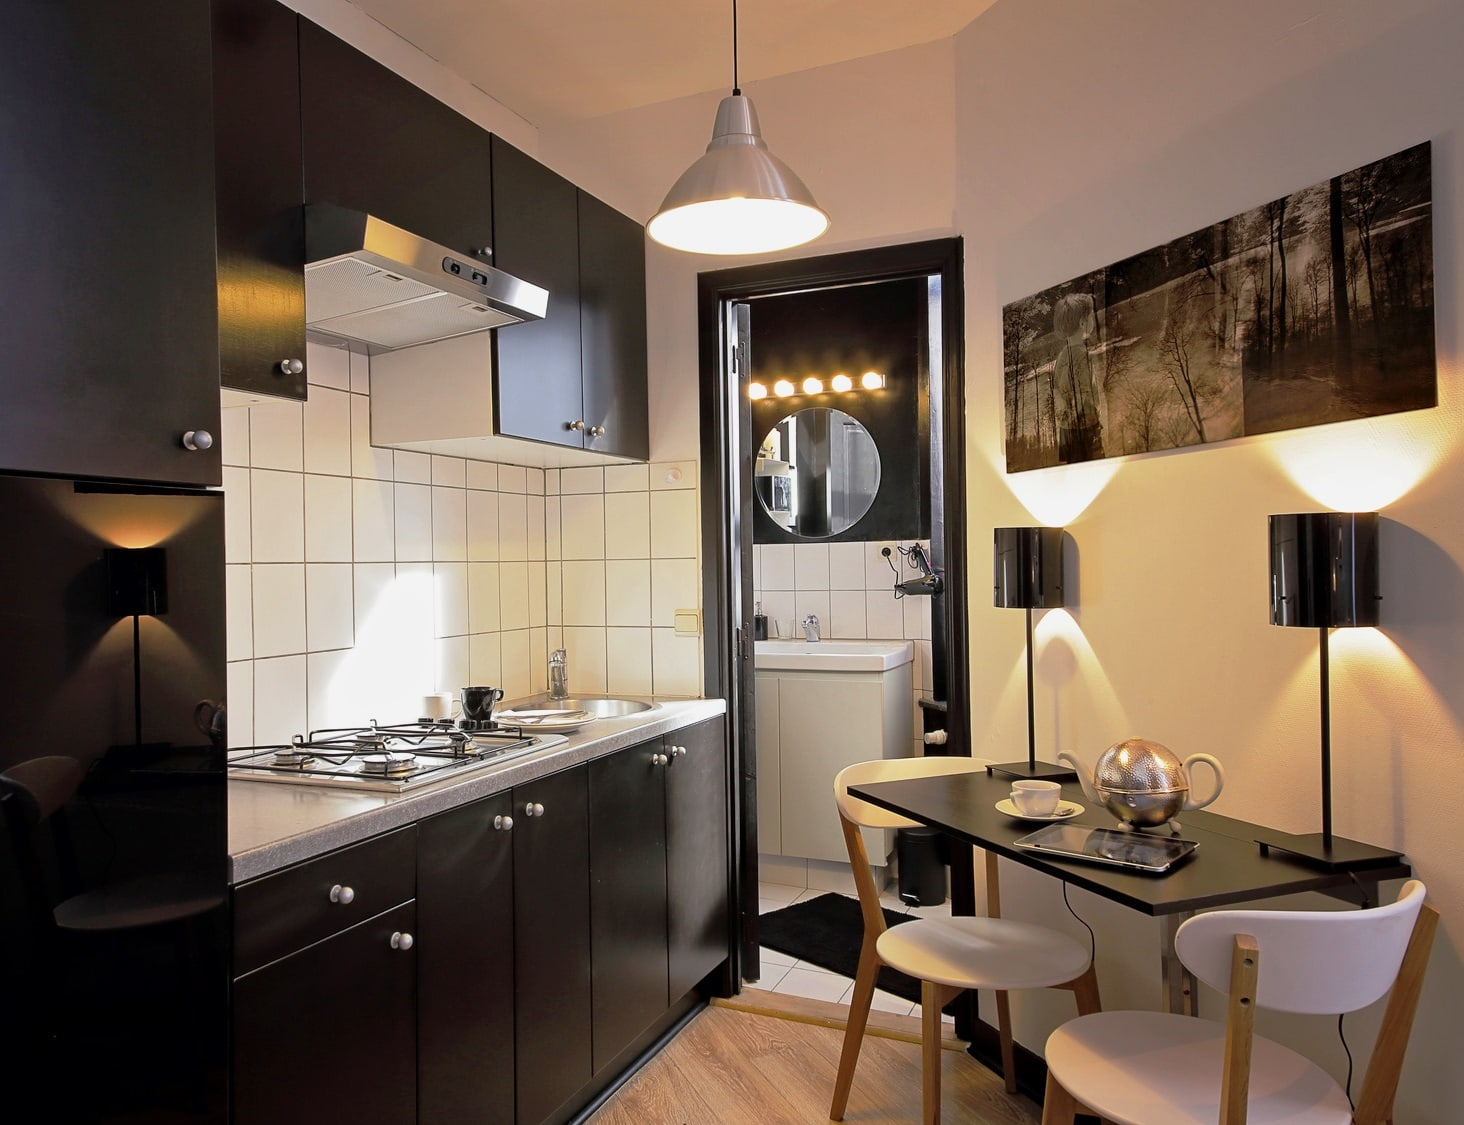 Small, soothing black kitchen